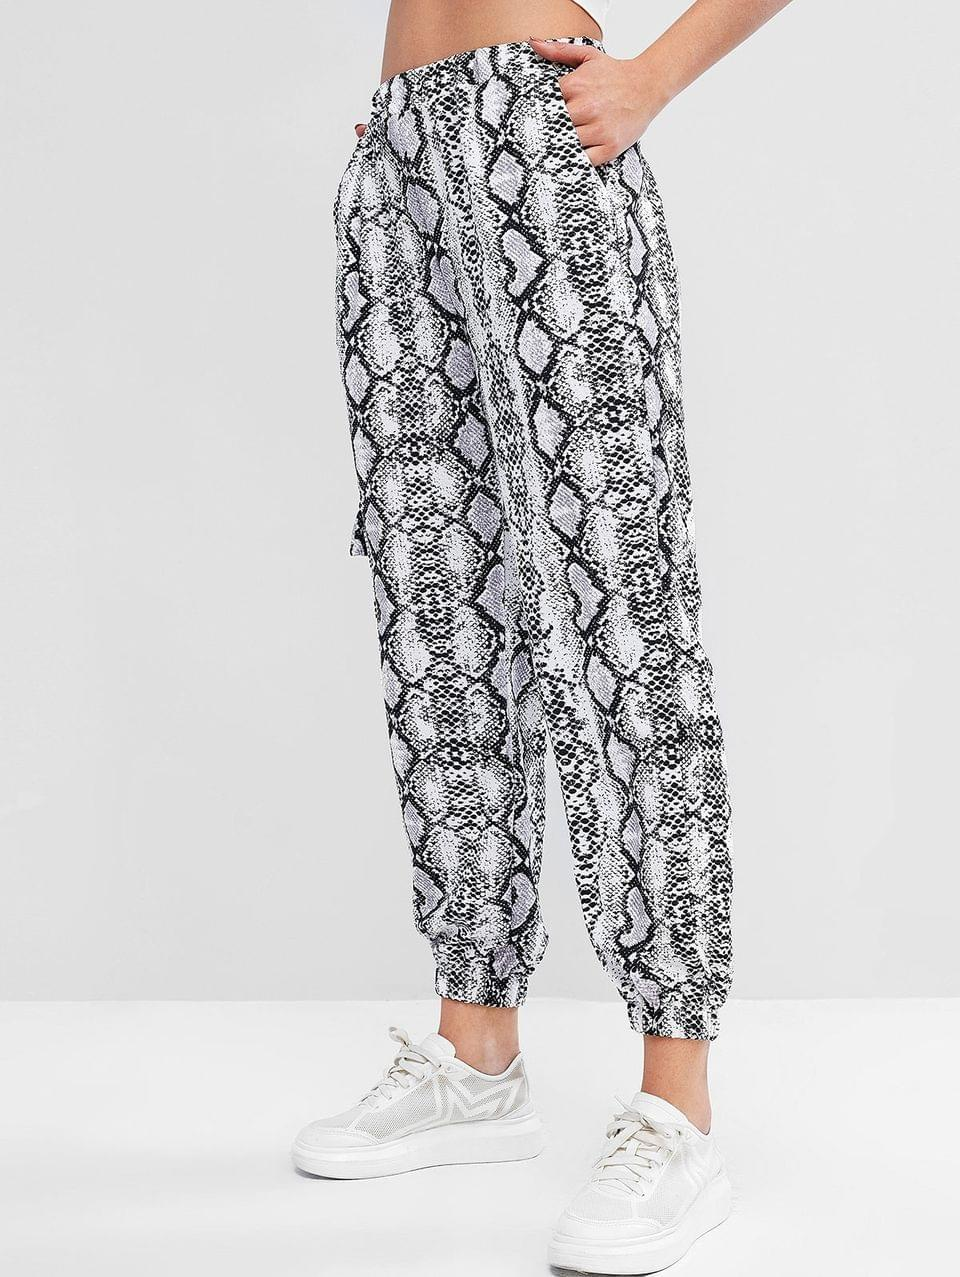 Women's Snakeskin Print High Waist Jogger Pants - Multi-b Xl